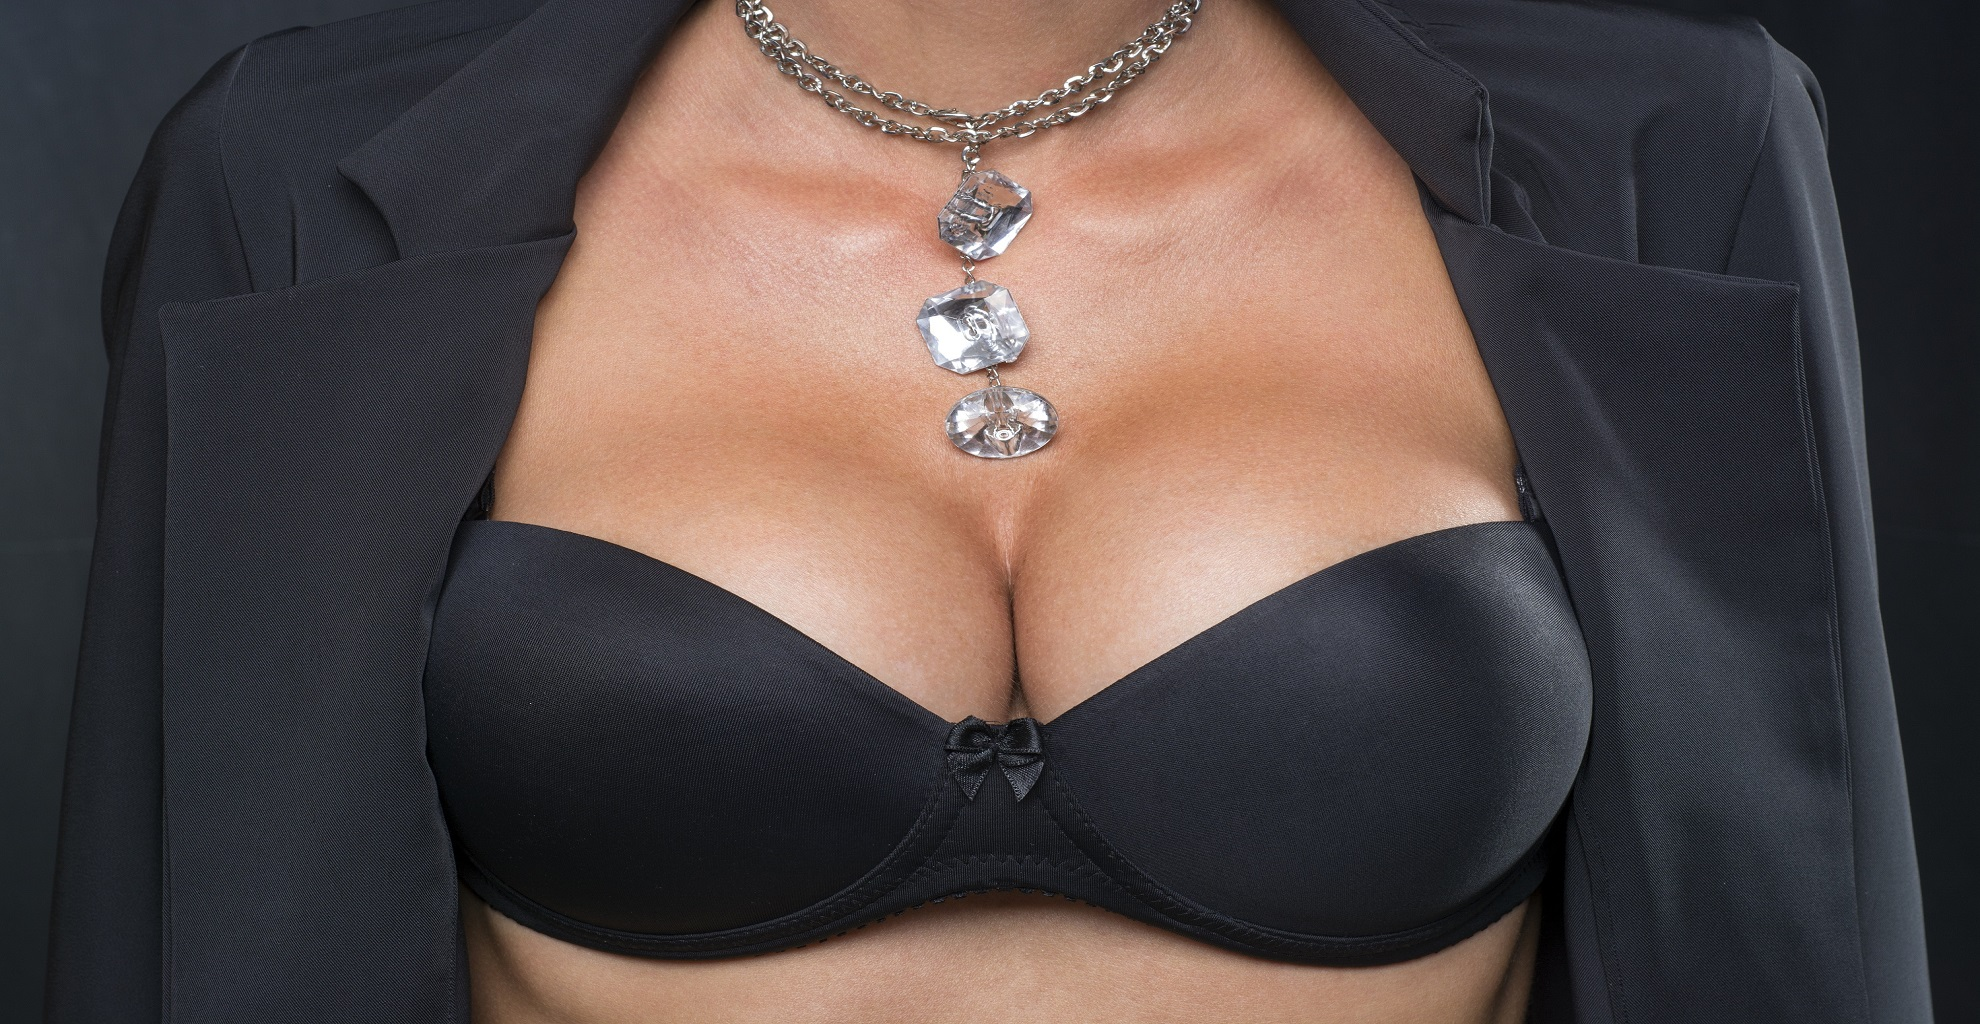 Big Breasts Lady In Sexy Corset and necklace jewelry